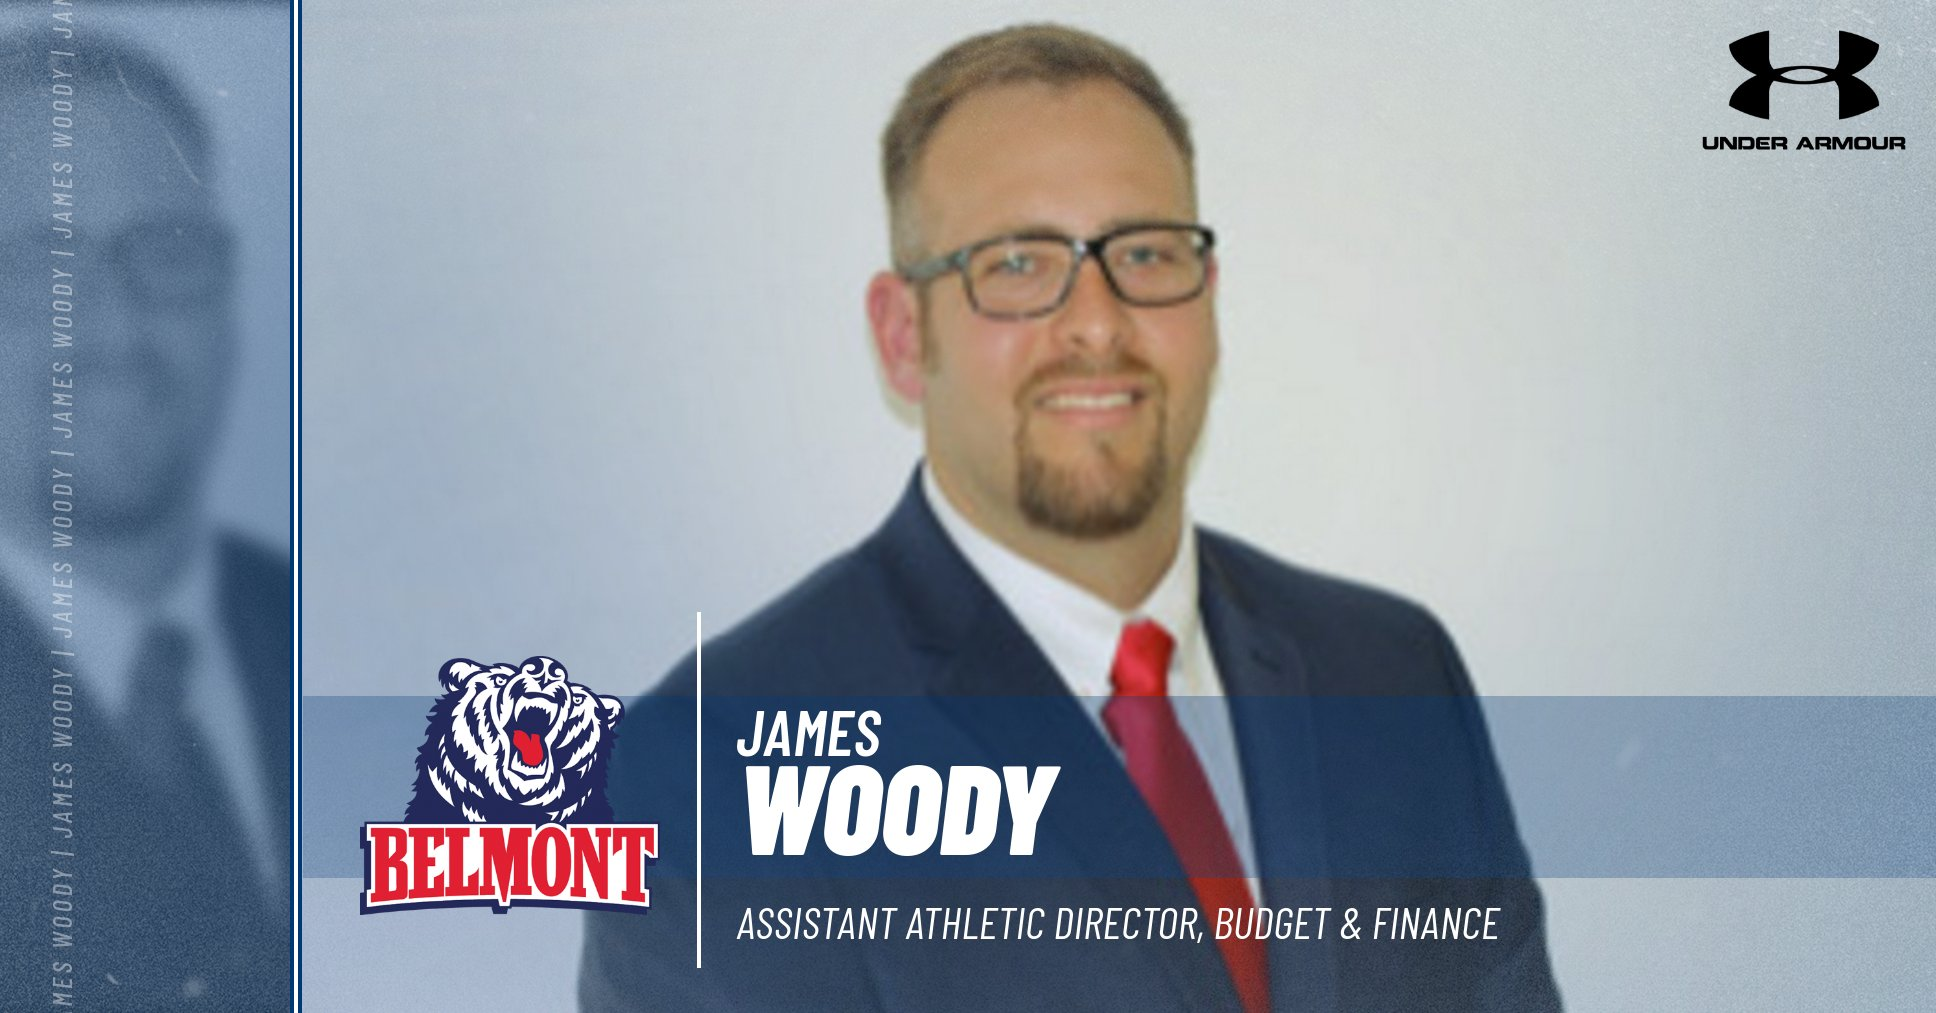 Welcome James Woody